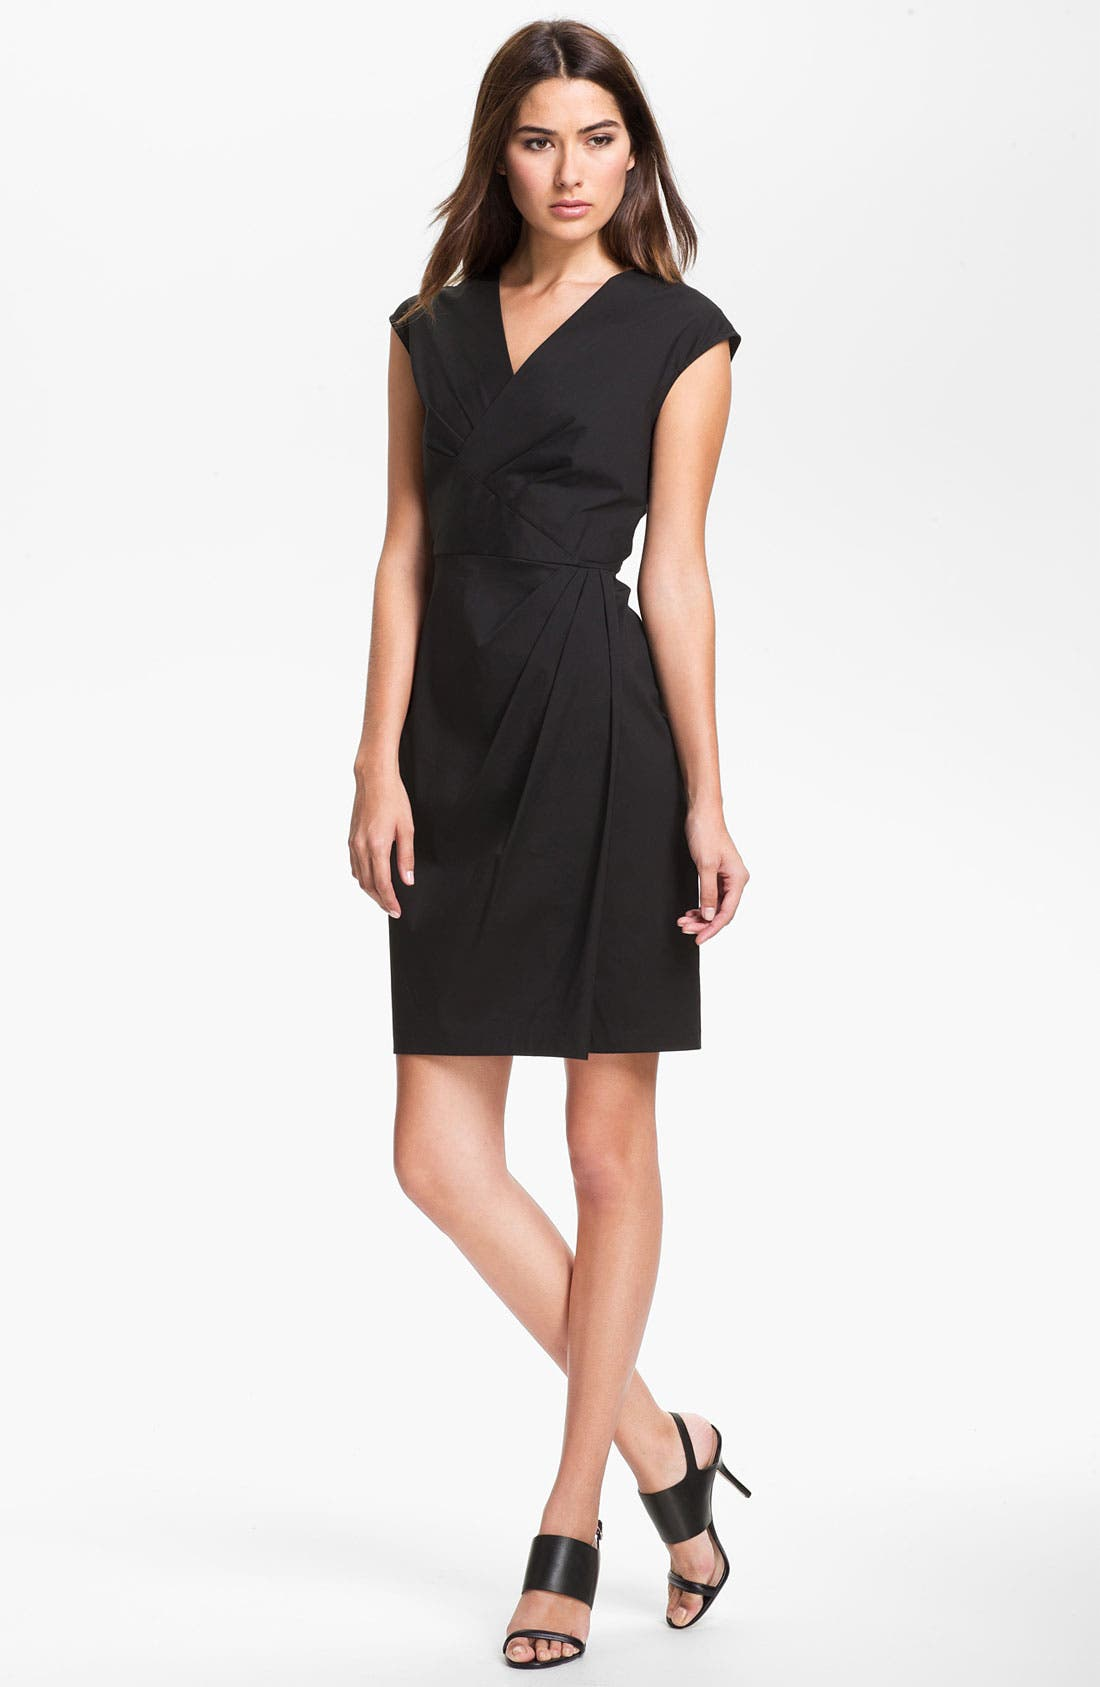 Alternate Image 1 Selected - Lafayette 148 New York 'Elsa - Italian' Stretch Dress (Online Exclusive)